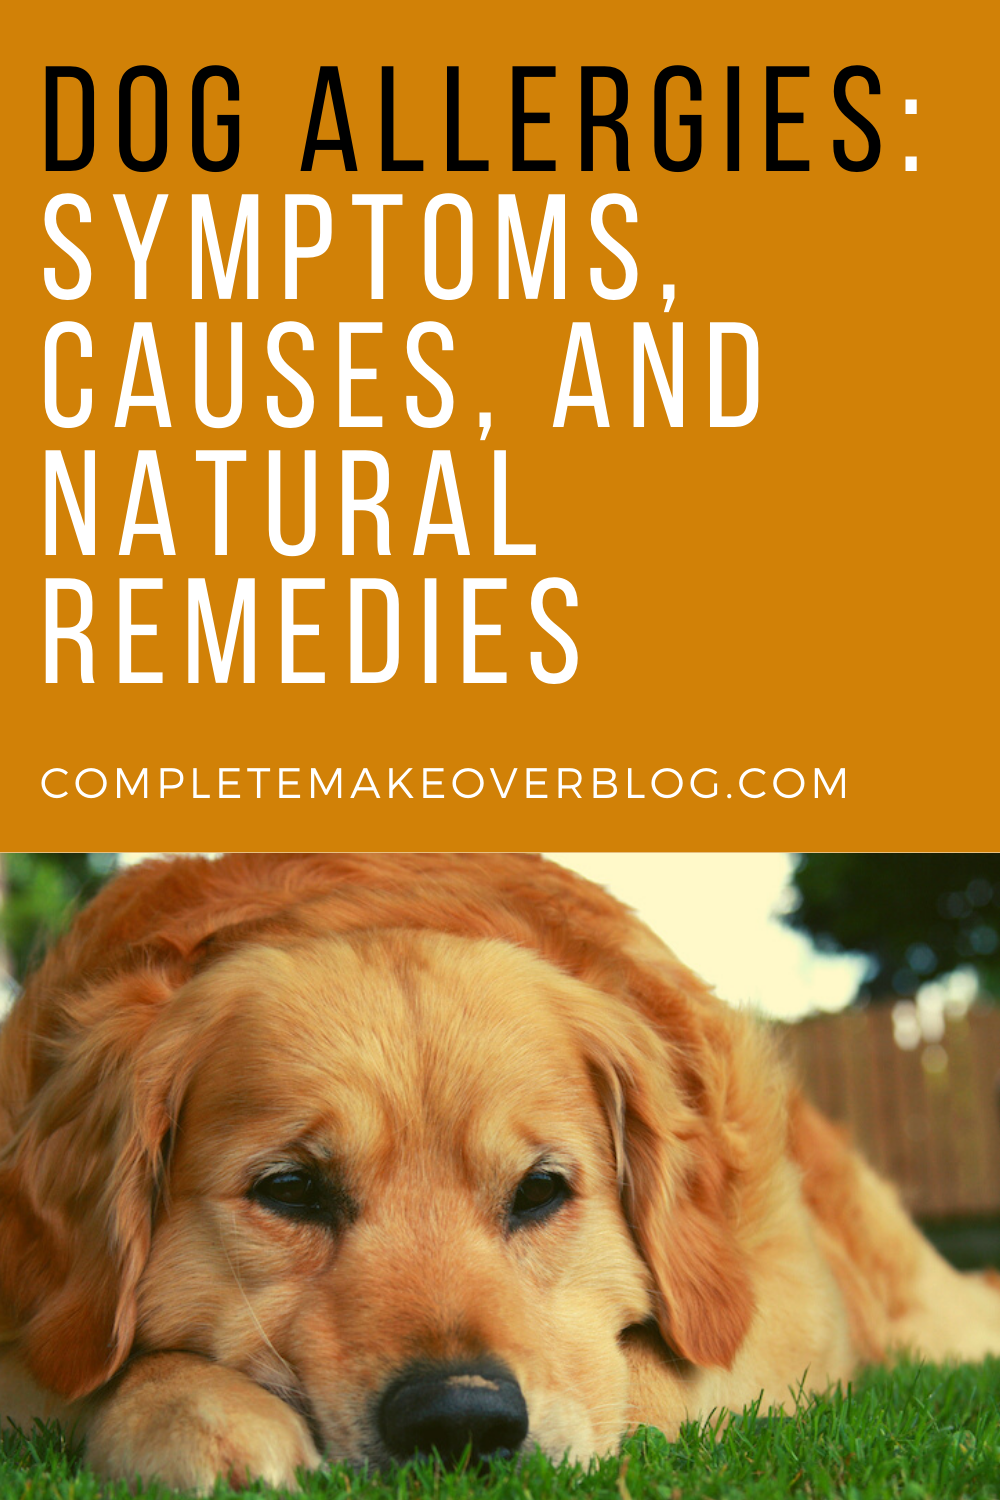 Dog Allergies Symptoms Causes And Natural Remedies In 2020 Dog Allergies Dog Skin Allergies Allergies